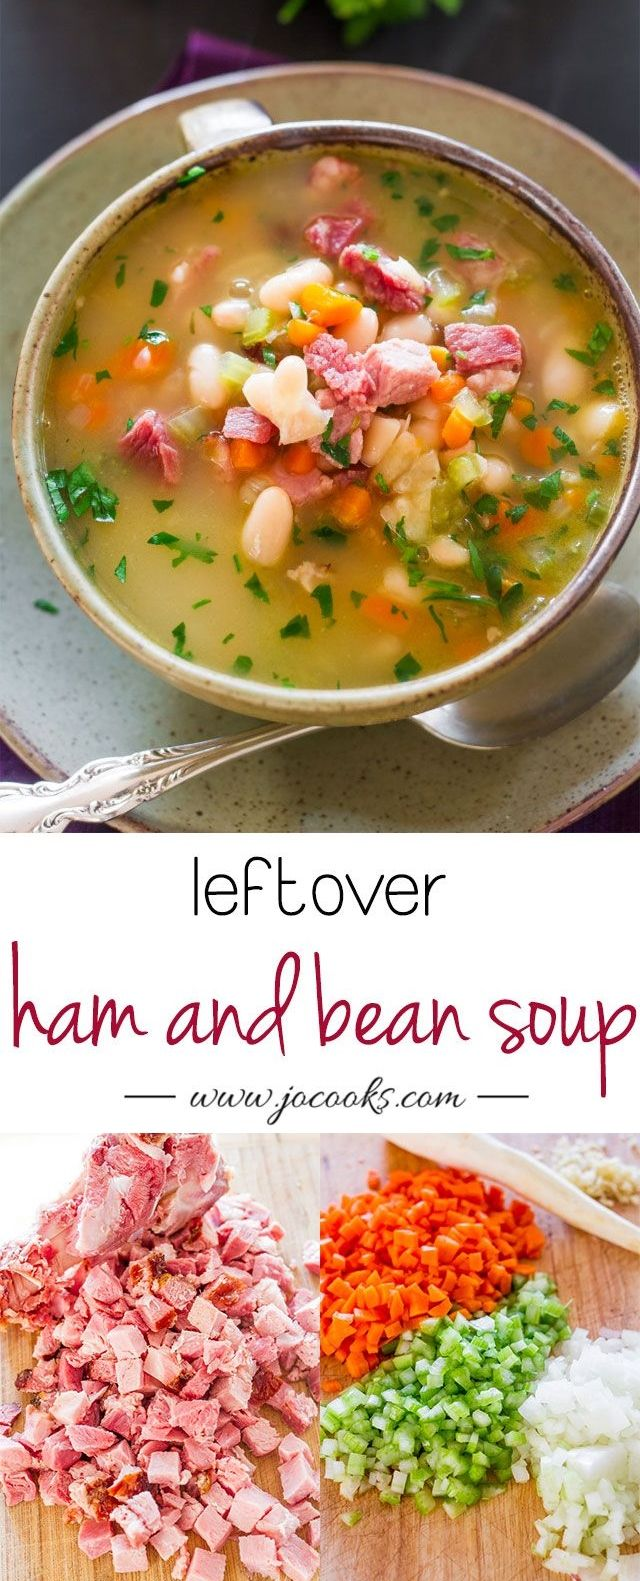 Leftover Ham and Bean Soup – perfect use of that leftover ham from Easter dinner. This soup is delicious, hearty and smells heavenly.